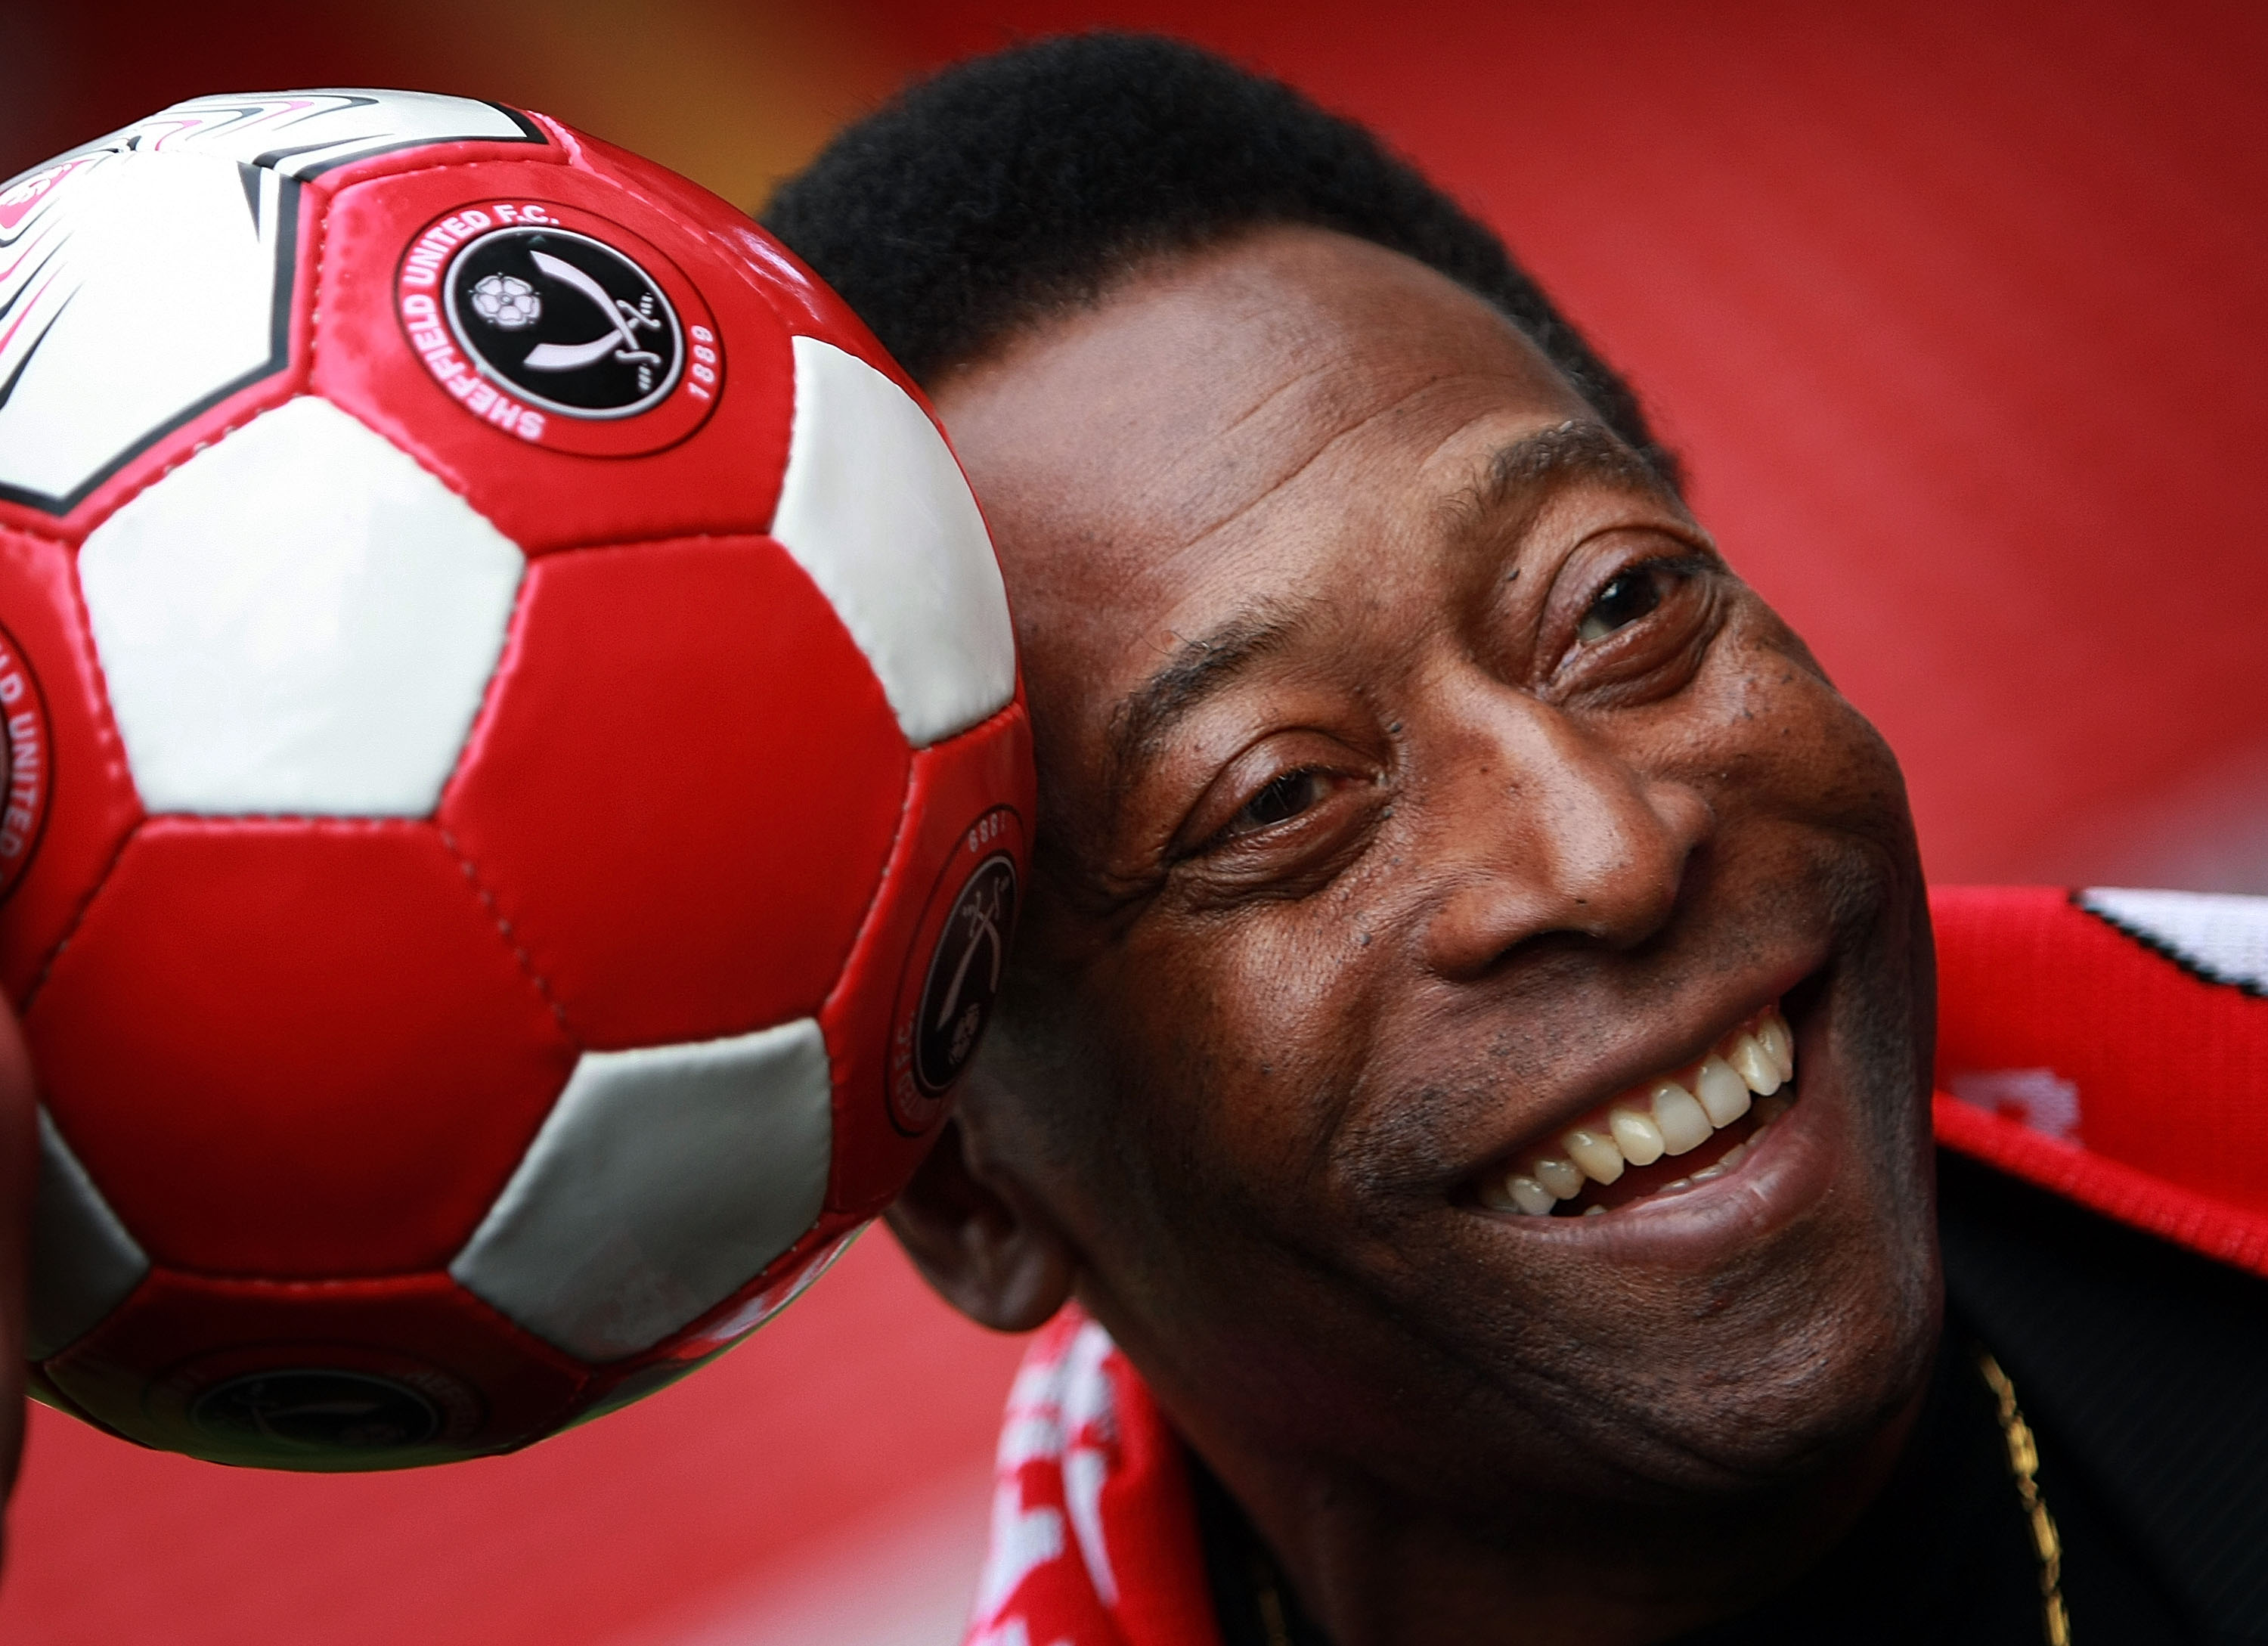 Pelé rests his head on a soccer ball for a picture